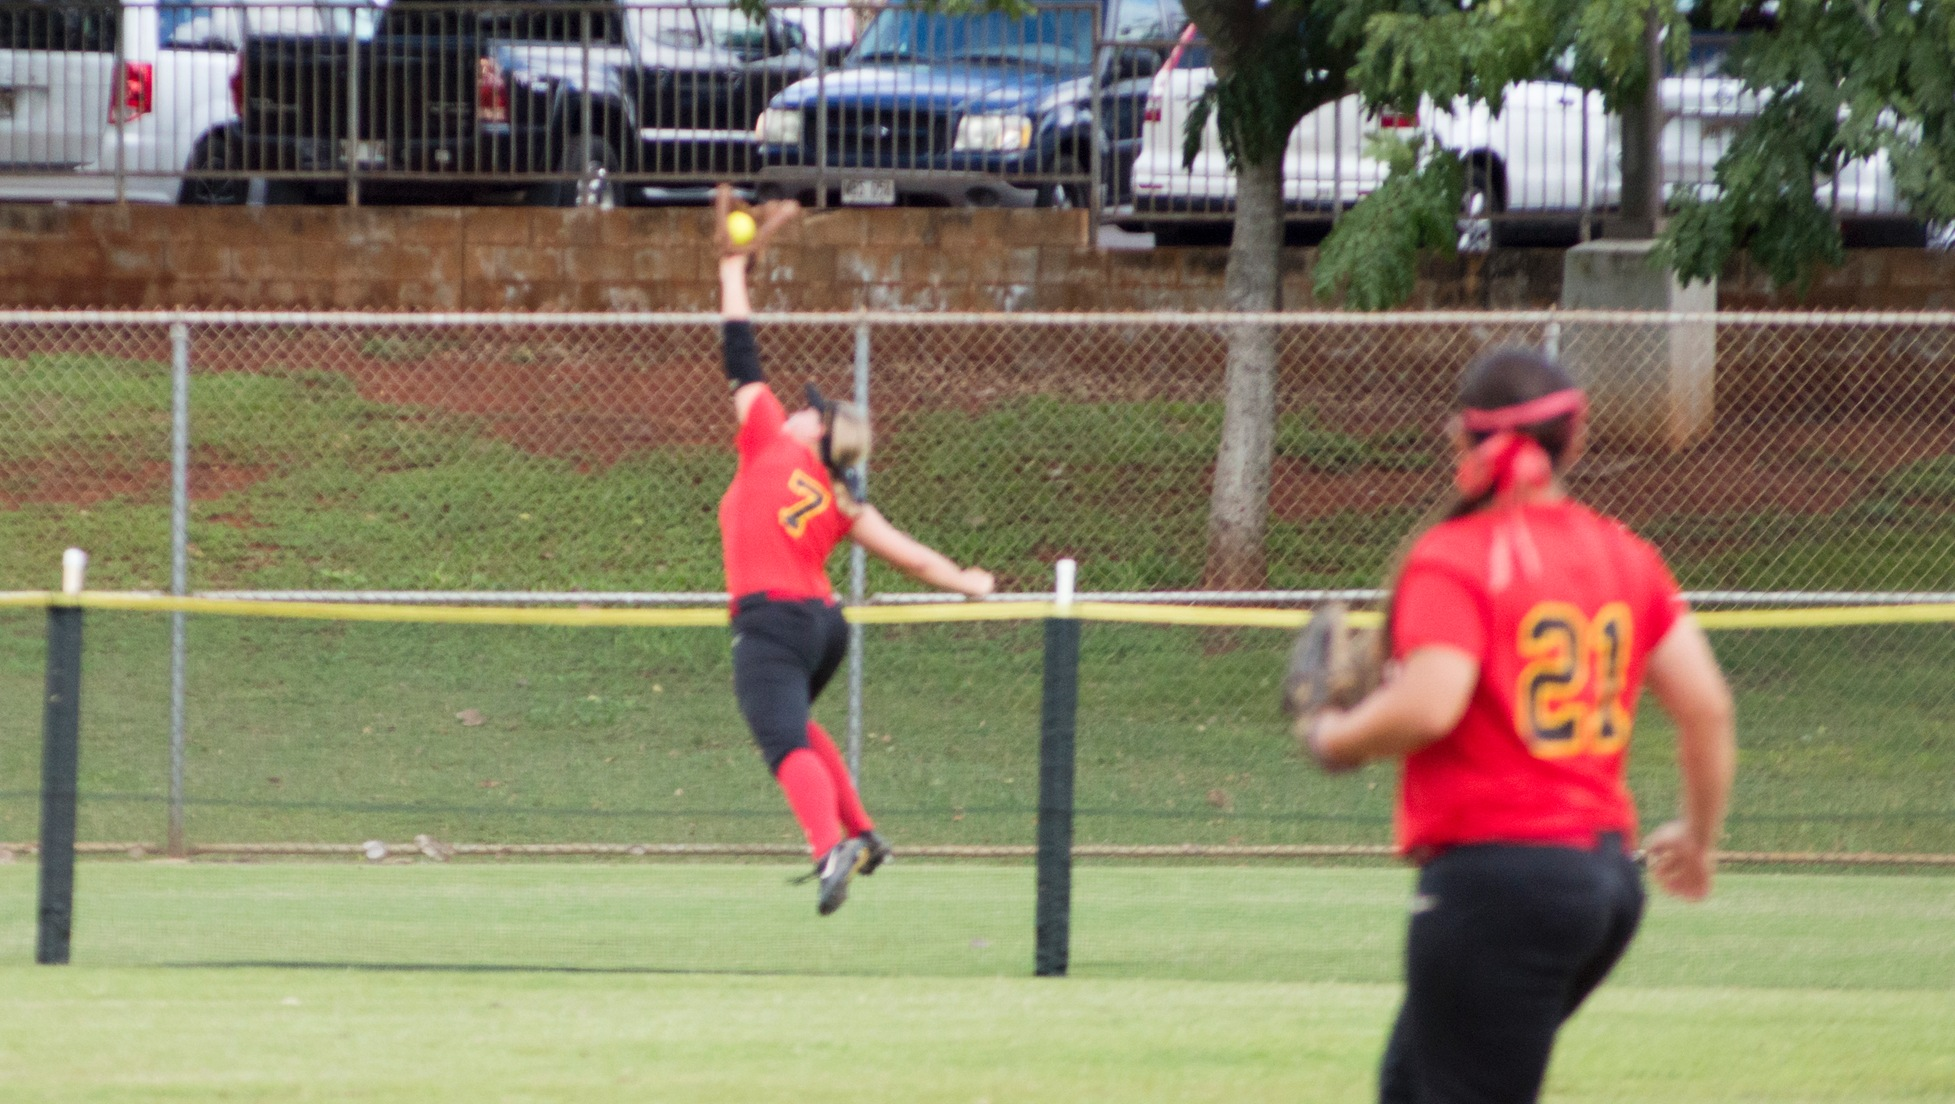 Katie Didonna robs a home run in the first game against Concordia.